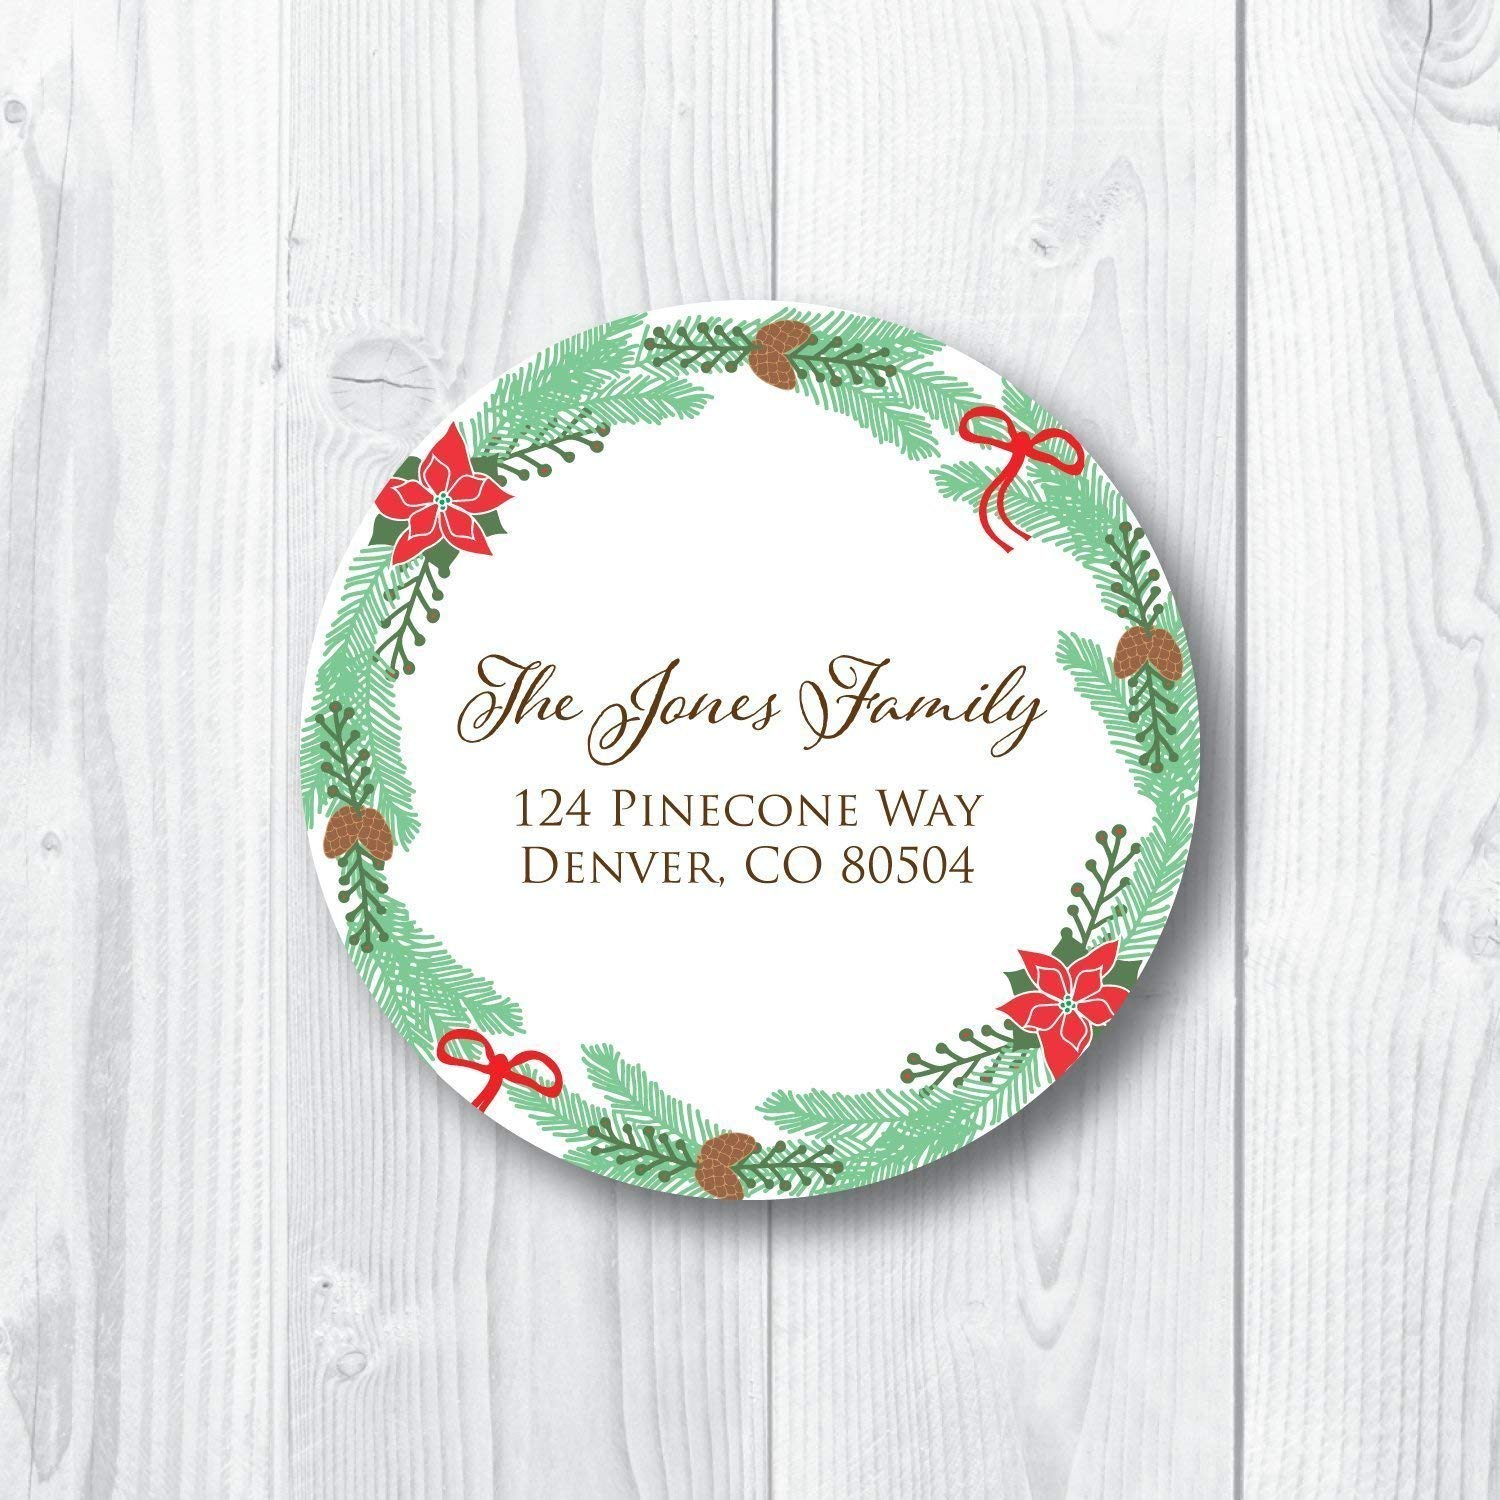 Return Address Labels Pinecone Wreath Super beauty product restock Popular product quality top